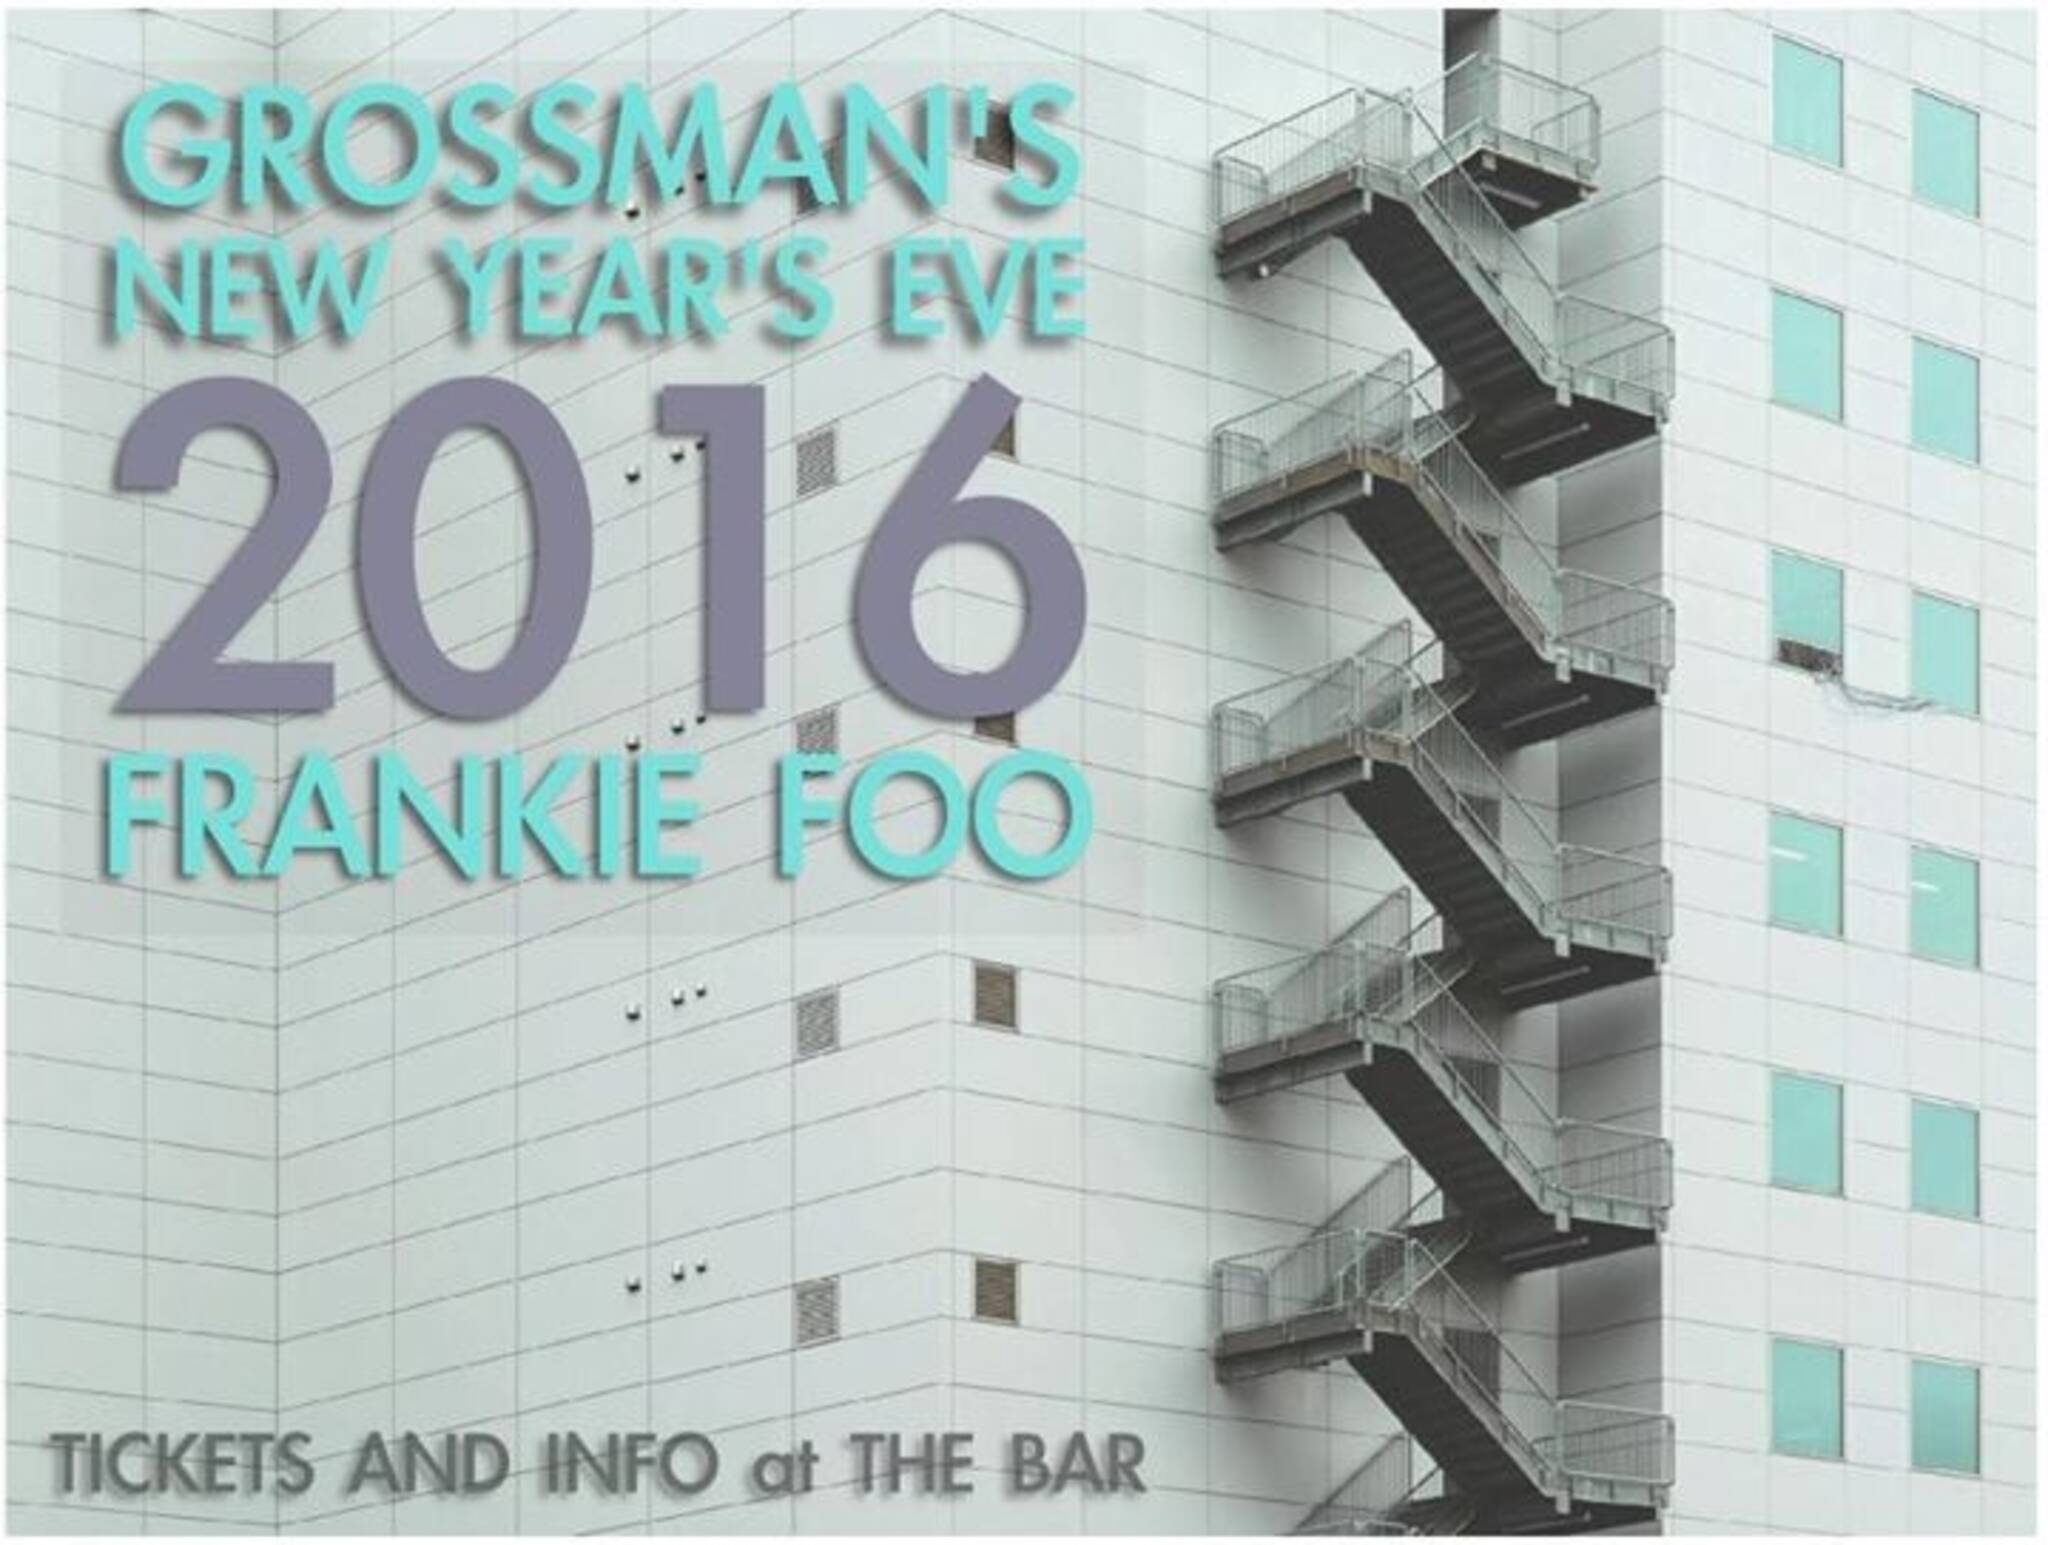 christian new years eve events 2016